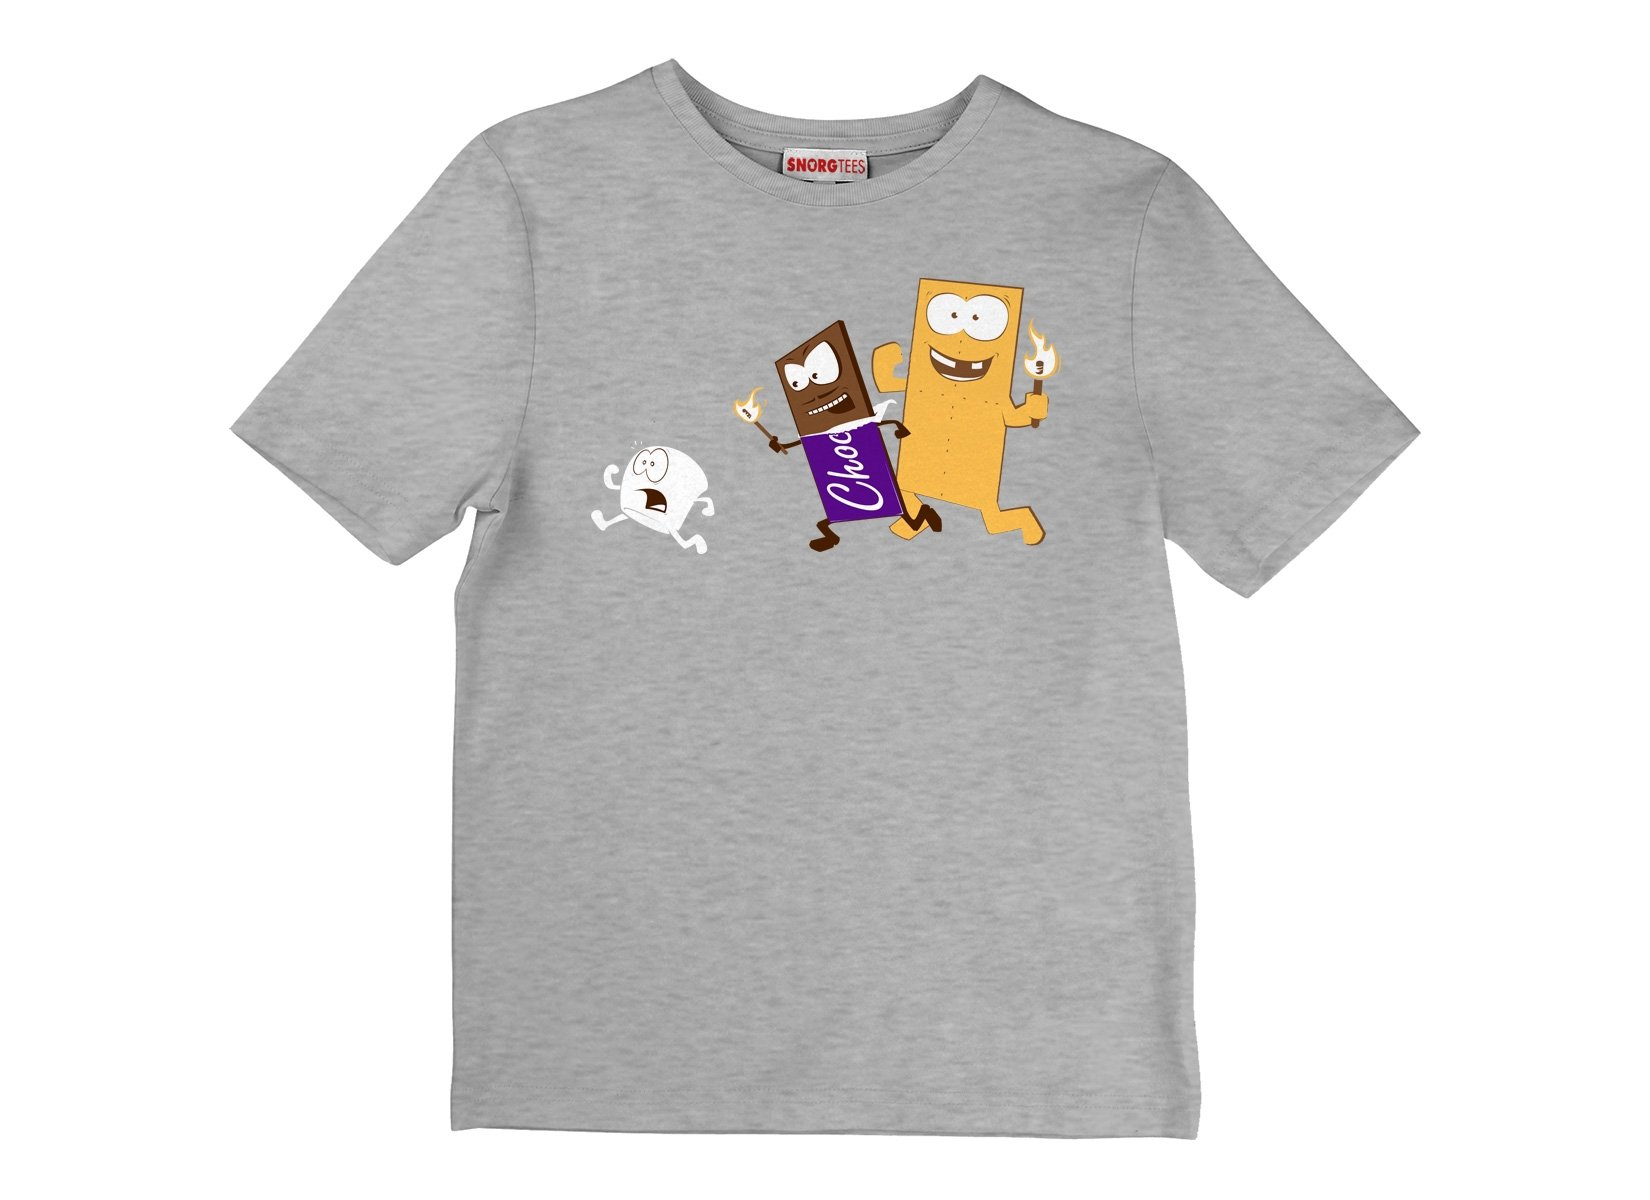 S'more on Kids T-Shirt